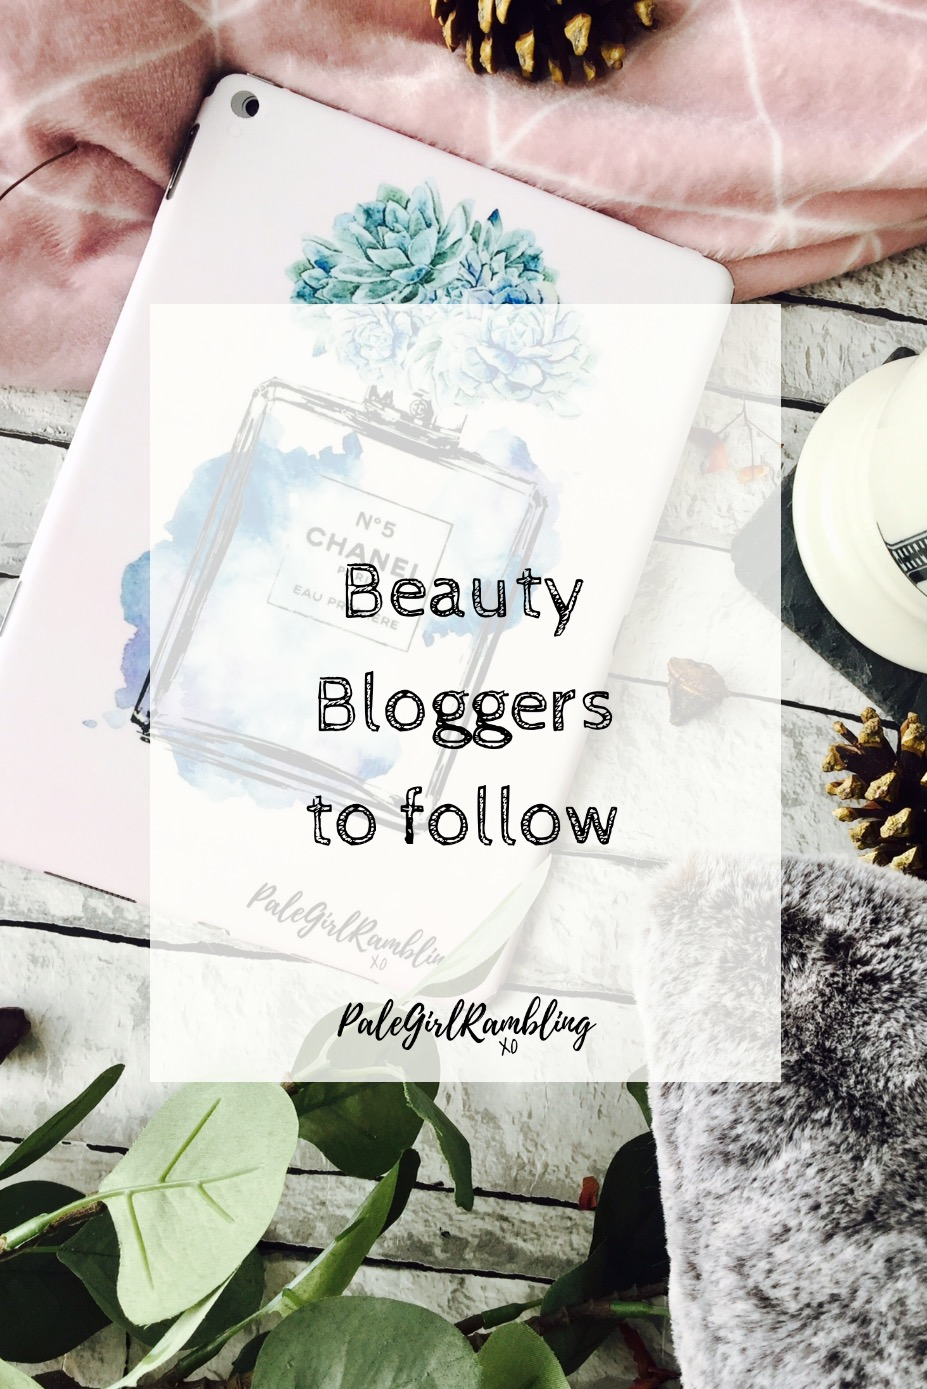 Beauty bloggers to follow recommendations